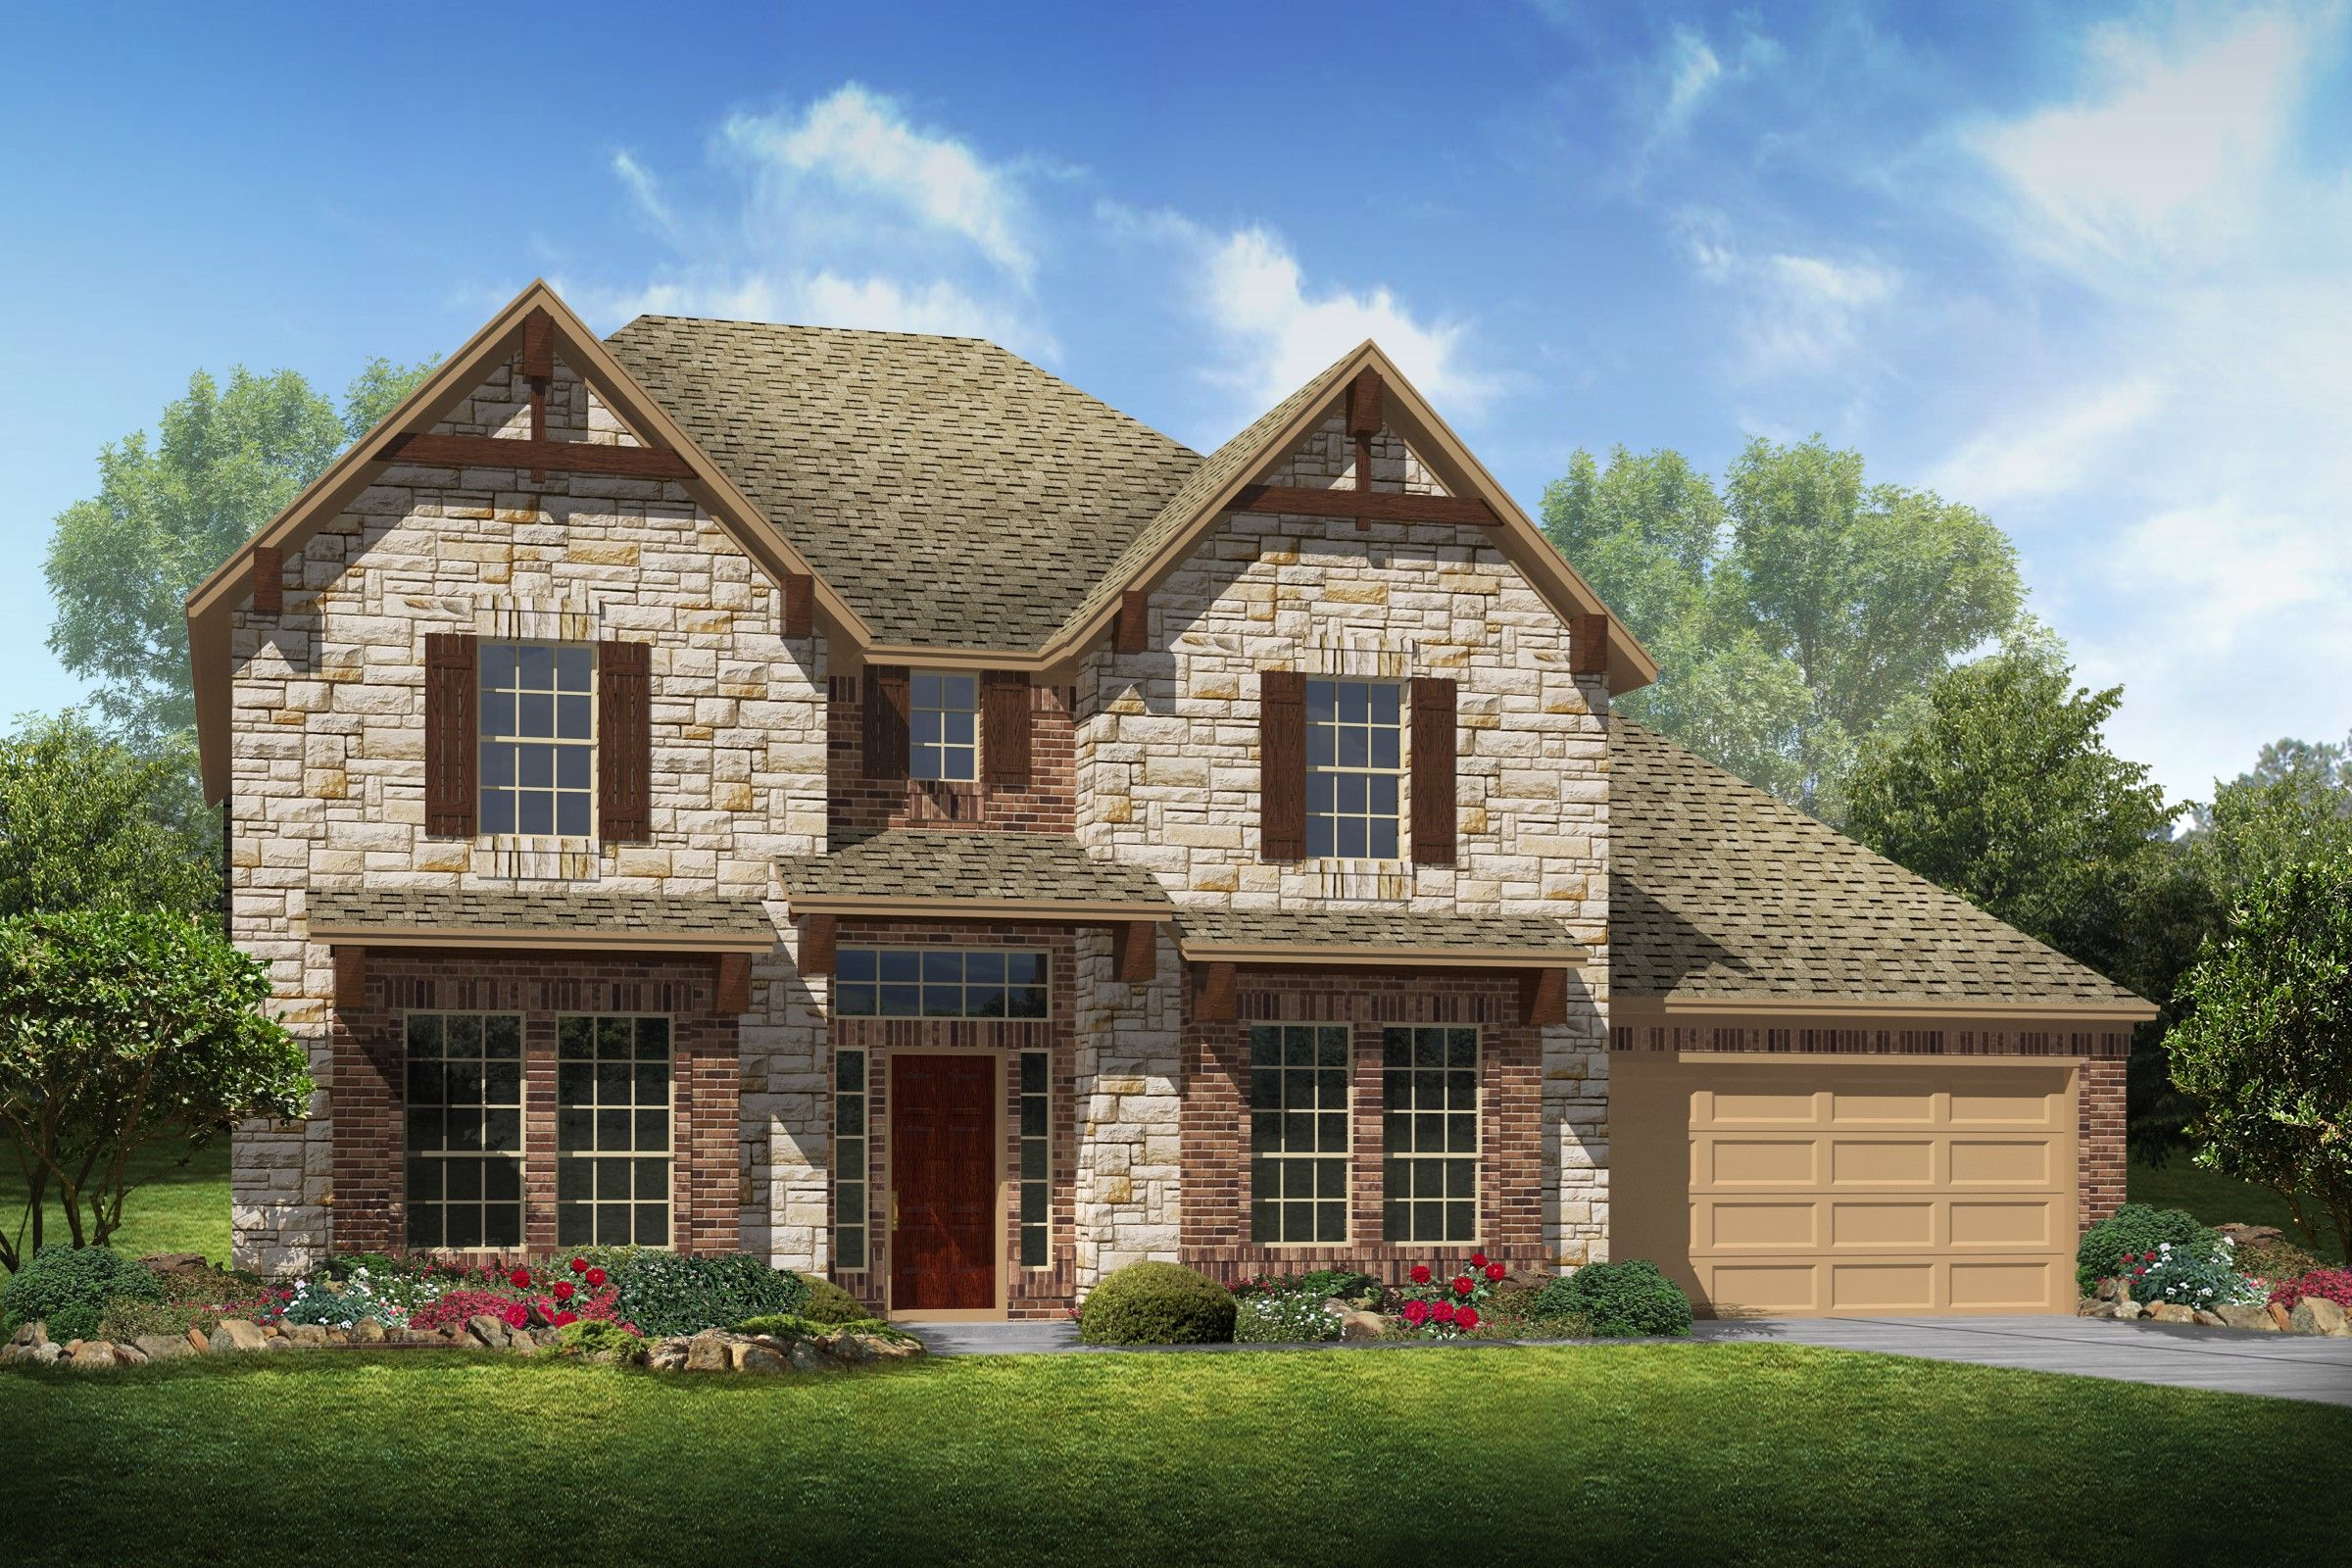 Baytown New Homes for Sale Find Baytown New Home Builders near